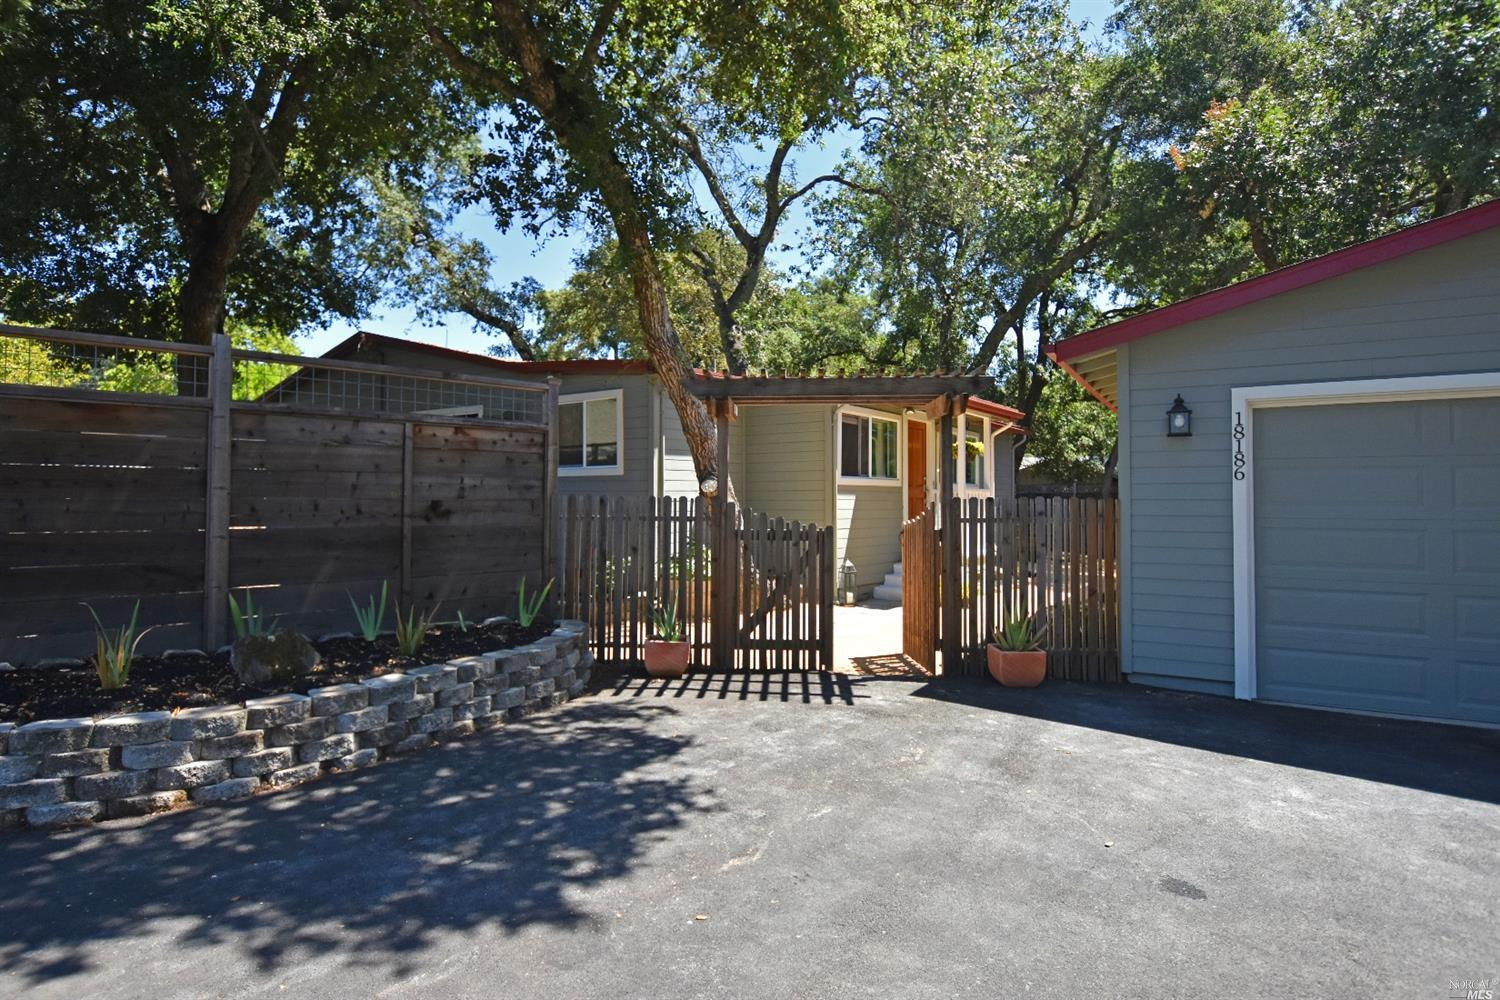 singles in boyes hot springs Your boyes hot springs real estate search starts here view 0 active homes for sale in boyes hot springs, ca and find your dream home, condo, townhome, or single family home with property listings .